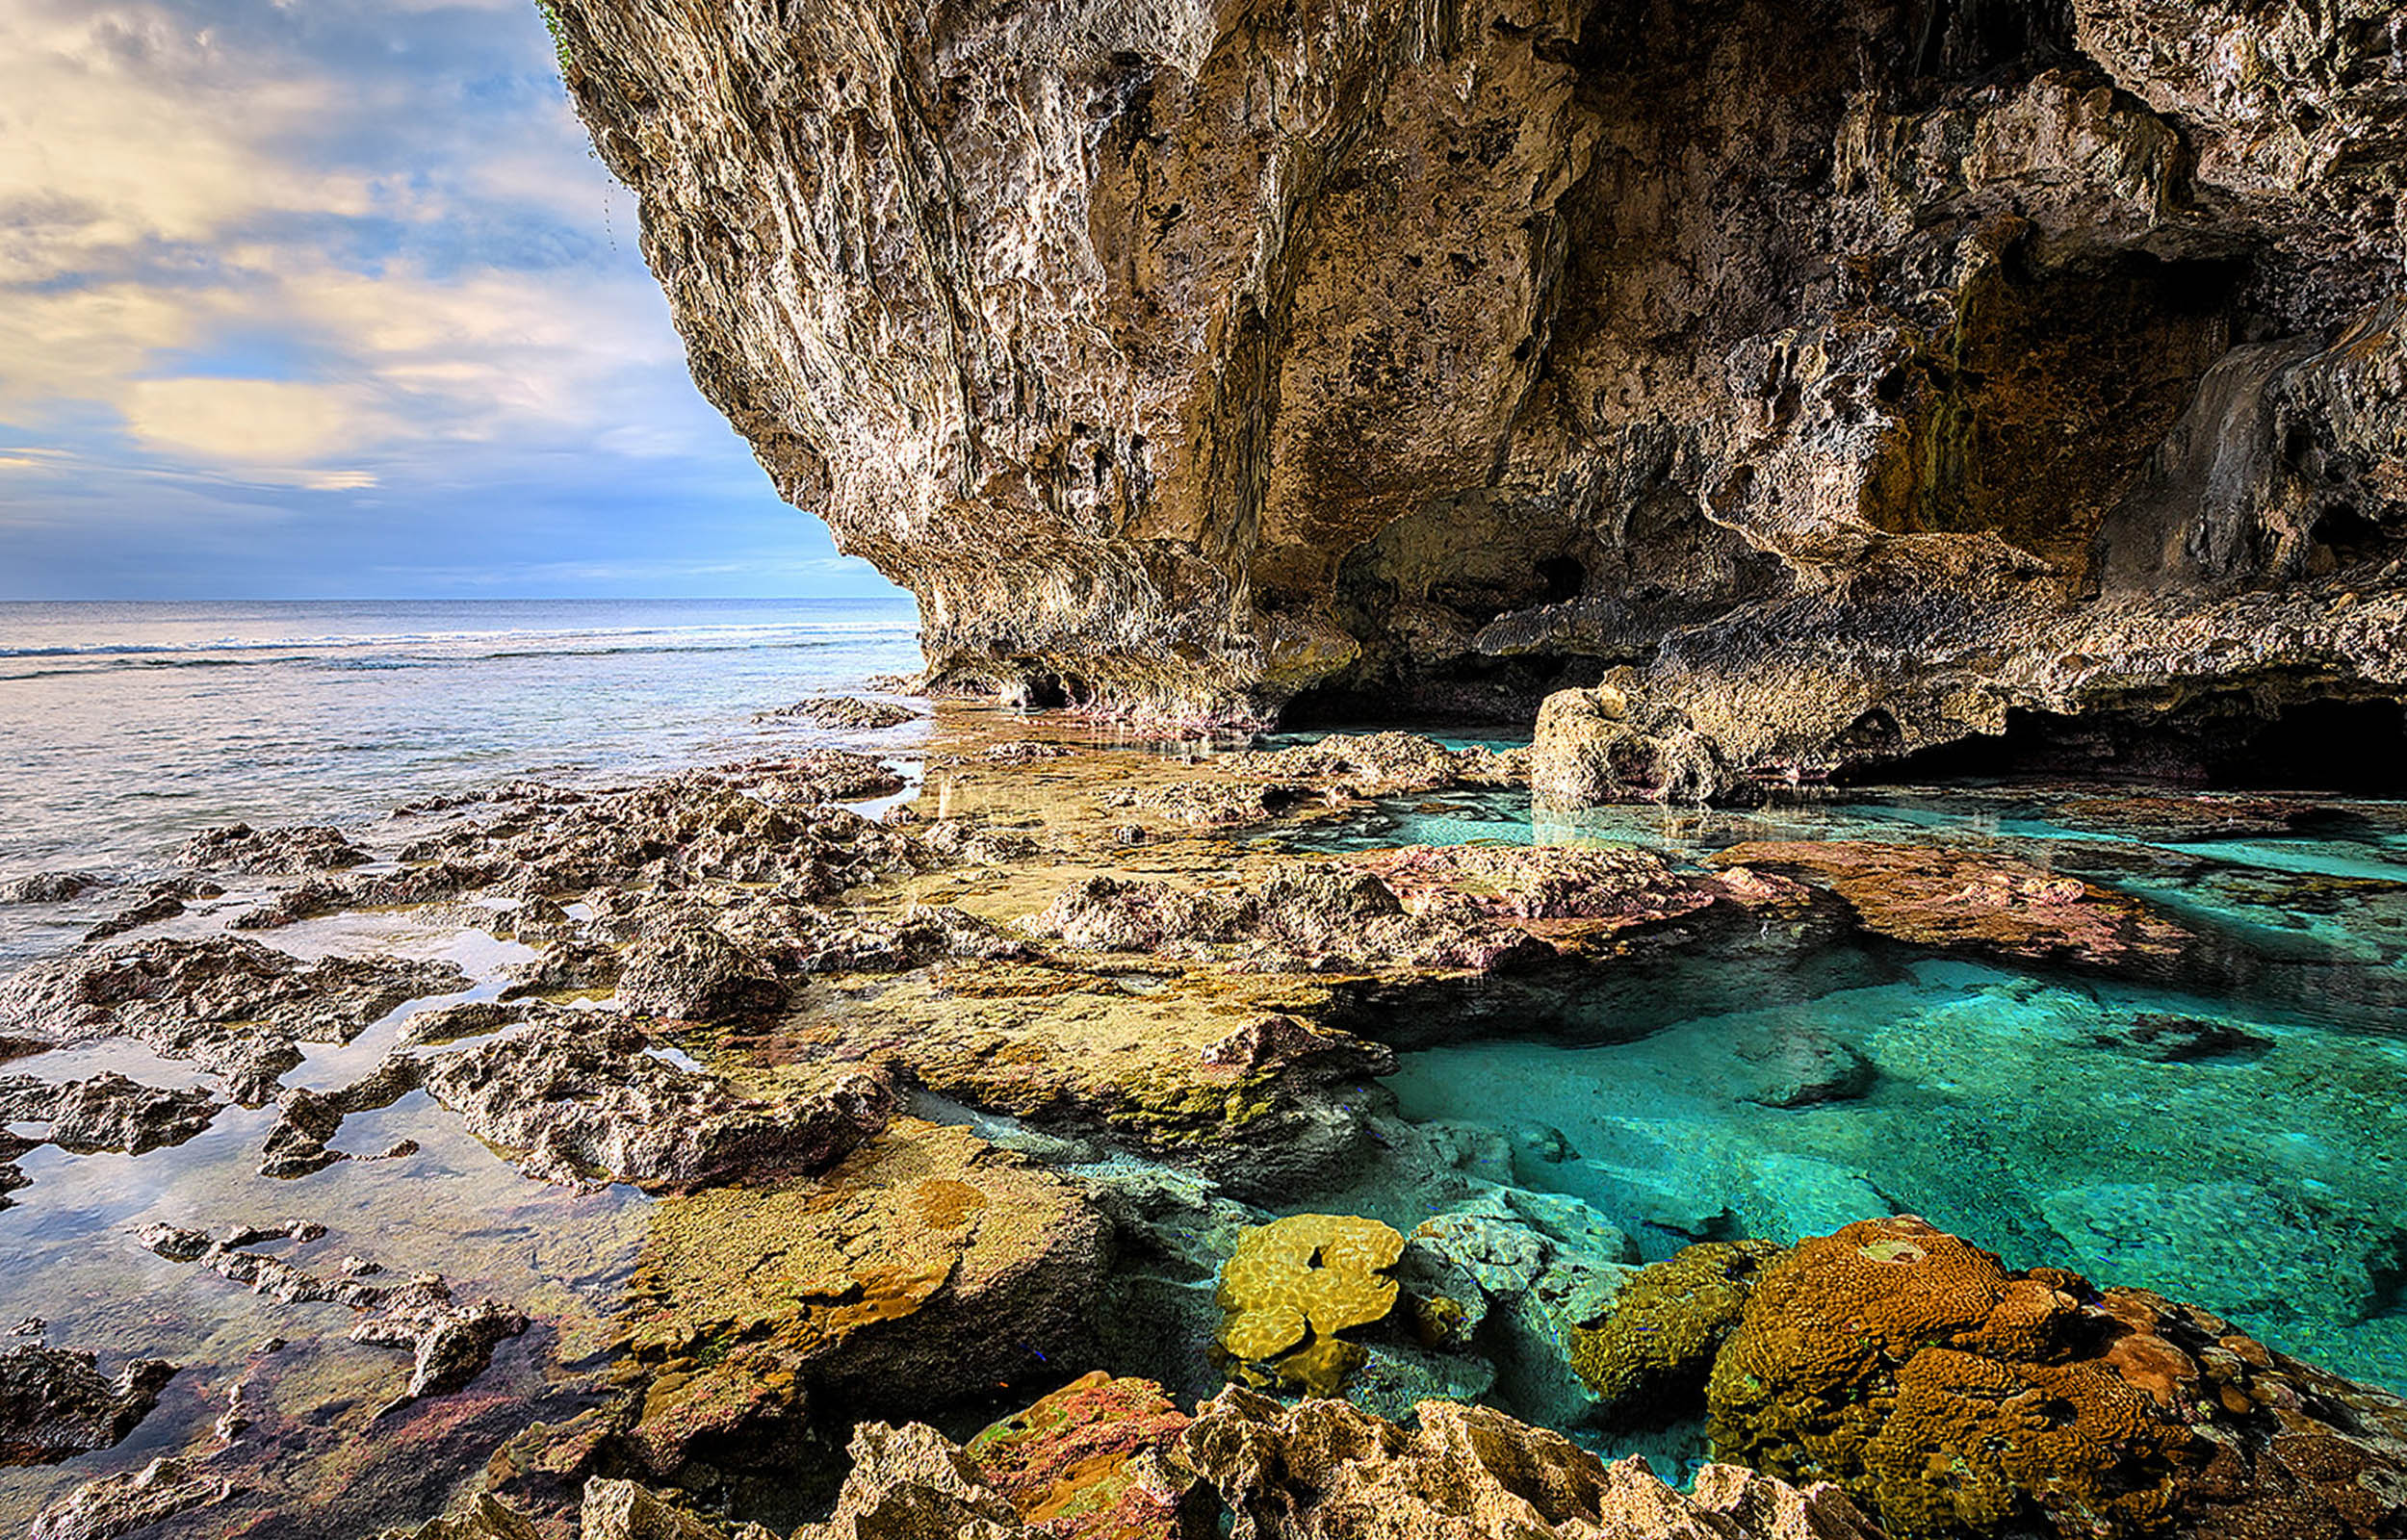 Cave wall and rocky floor with coral in limpid blue water pools facing out to the ocean at Niue